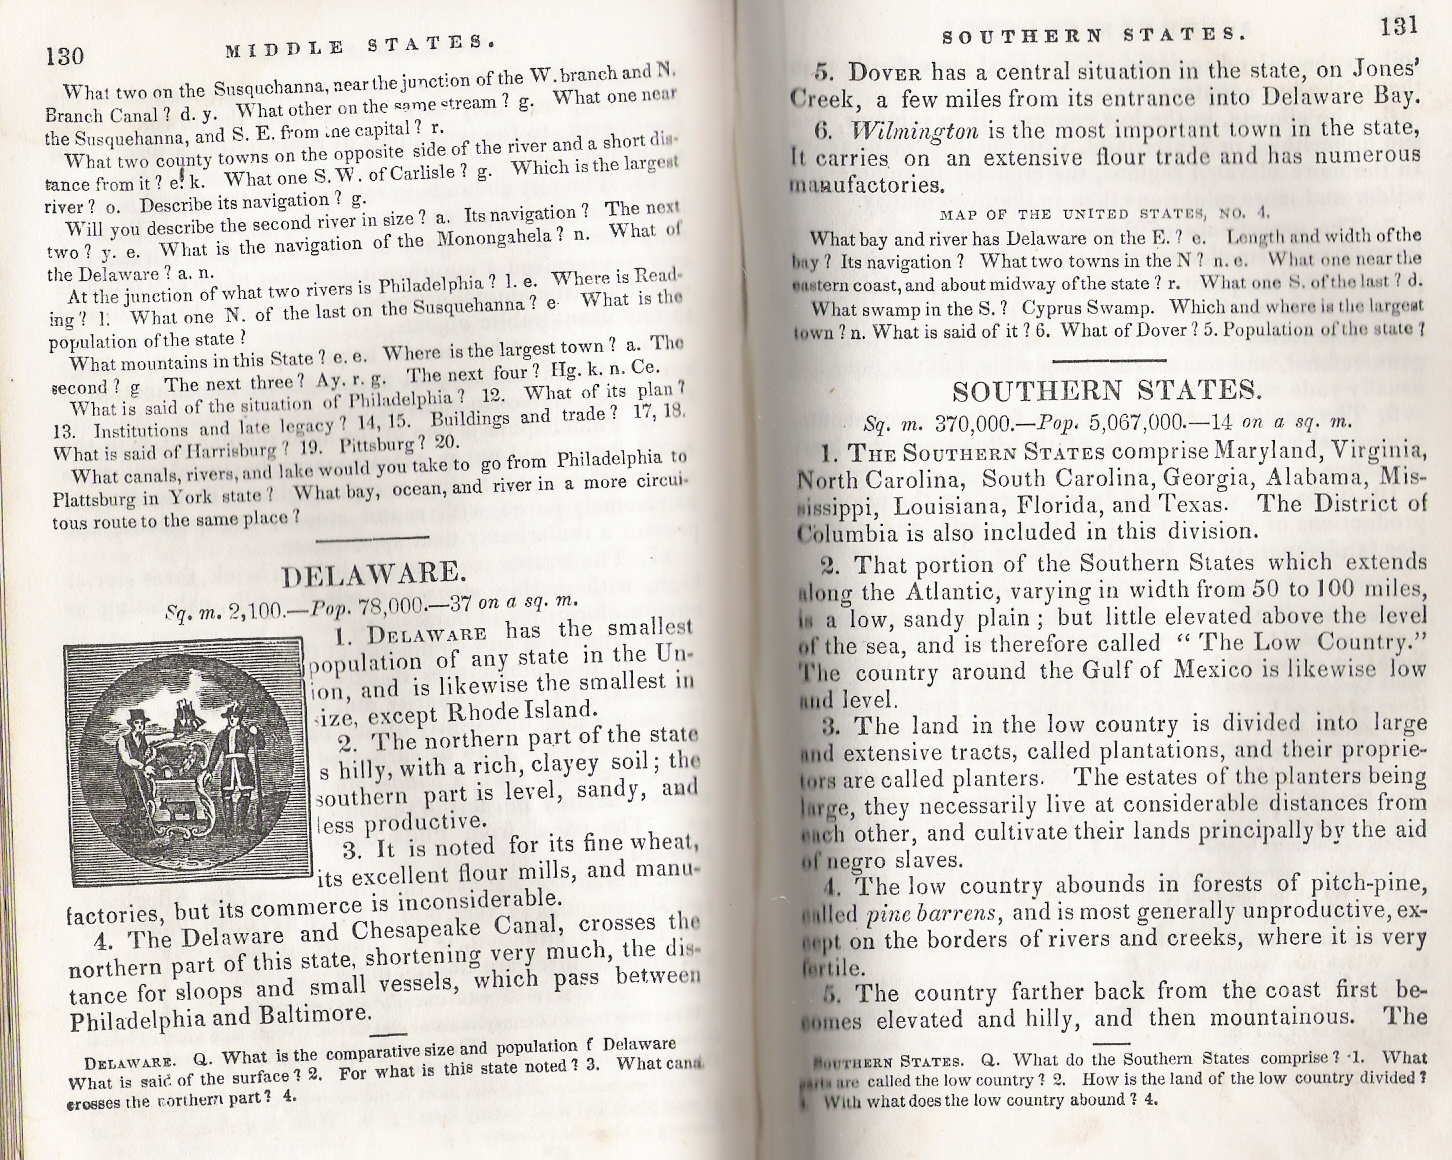 An advertisement indicates the first edition appeared in 1835 with a  revision in 1840, and apparently little or no change in subsequent  printings.